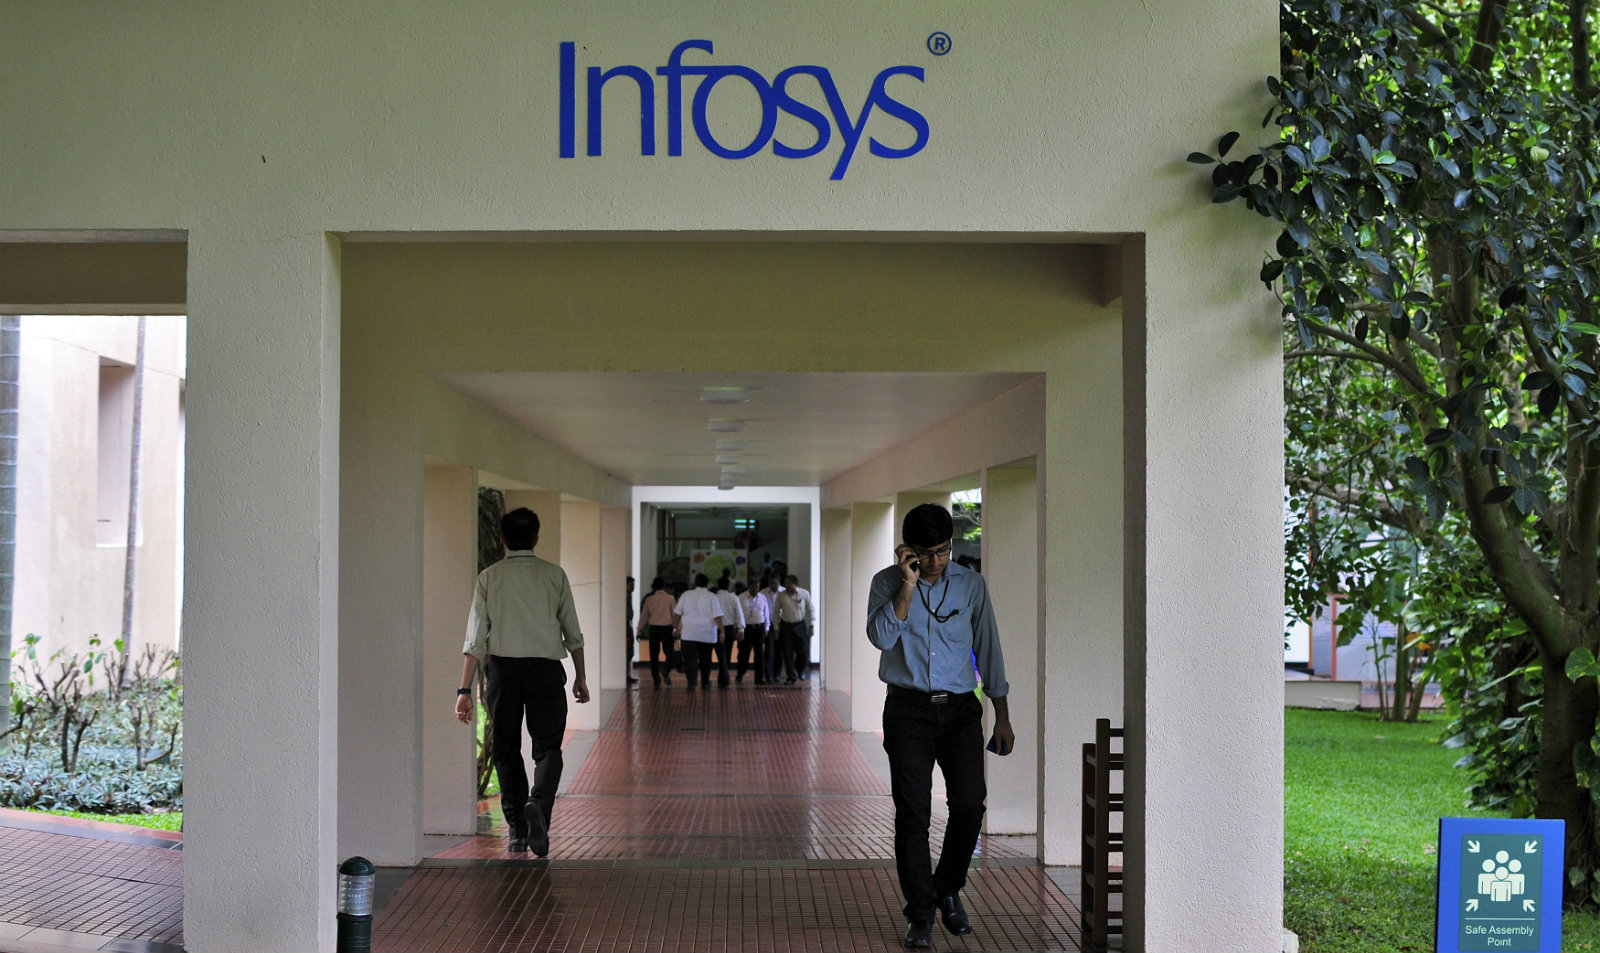 Employees walk along a corridor in the Infosys campus in the southern Indian city of Bangalore September 23, 2014. Infosys Ltd's new CEO Vishal Sikka has come up with a novel approach to reviving the financial fortunes of India's trailblazing outsourcing firm: use Facebook at work, tweet, but get the job done. Infosys has long been run as a conservative company known for keeping strict tabs on work hours and sometimes fining employees for not wearing ties on specific days. Such cheerless self-regard could not have come at a more challenging time, analysts say. To retain talent, Sikka hopes to create a more employee-friendly workplace. To match story INFOSYS-CEO/STRATEGY